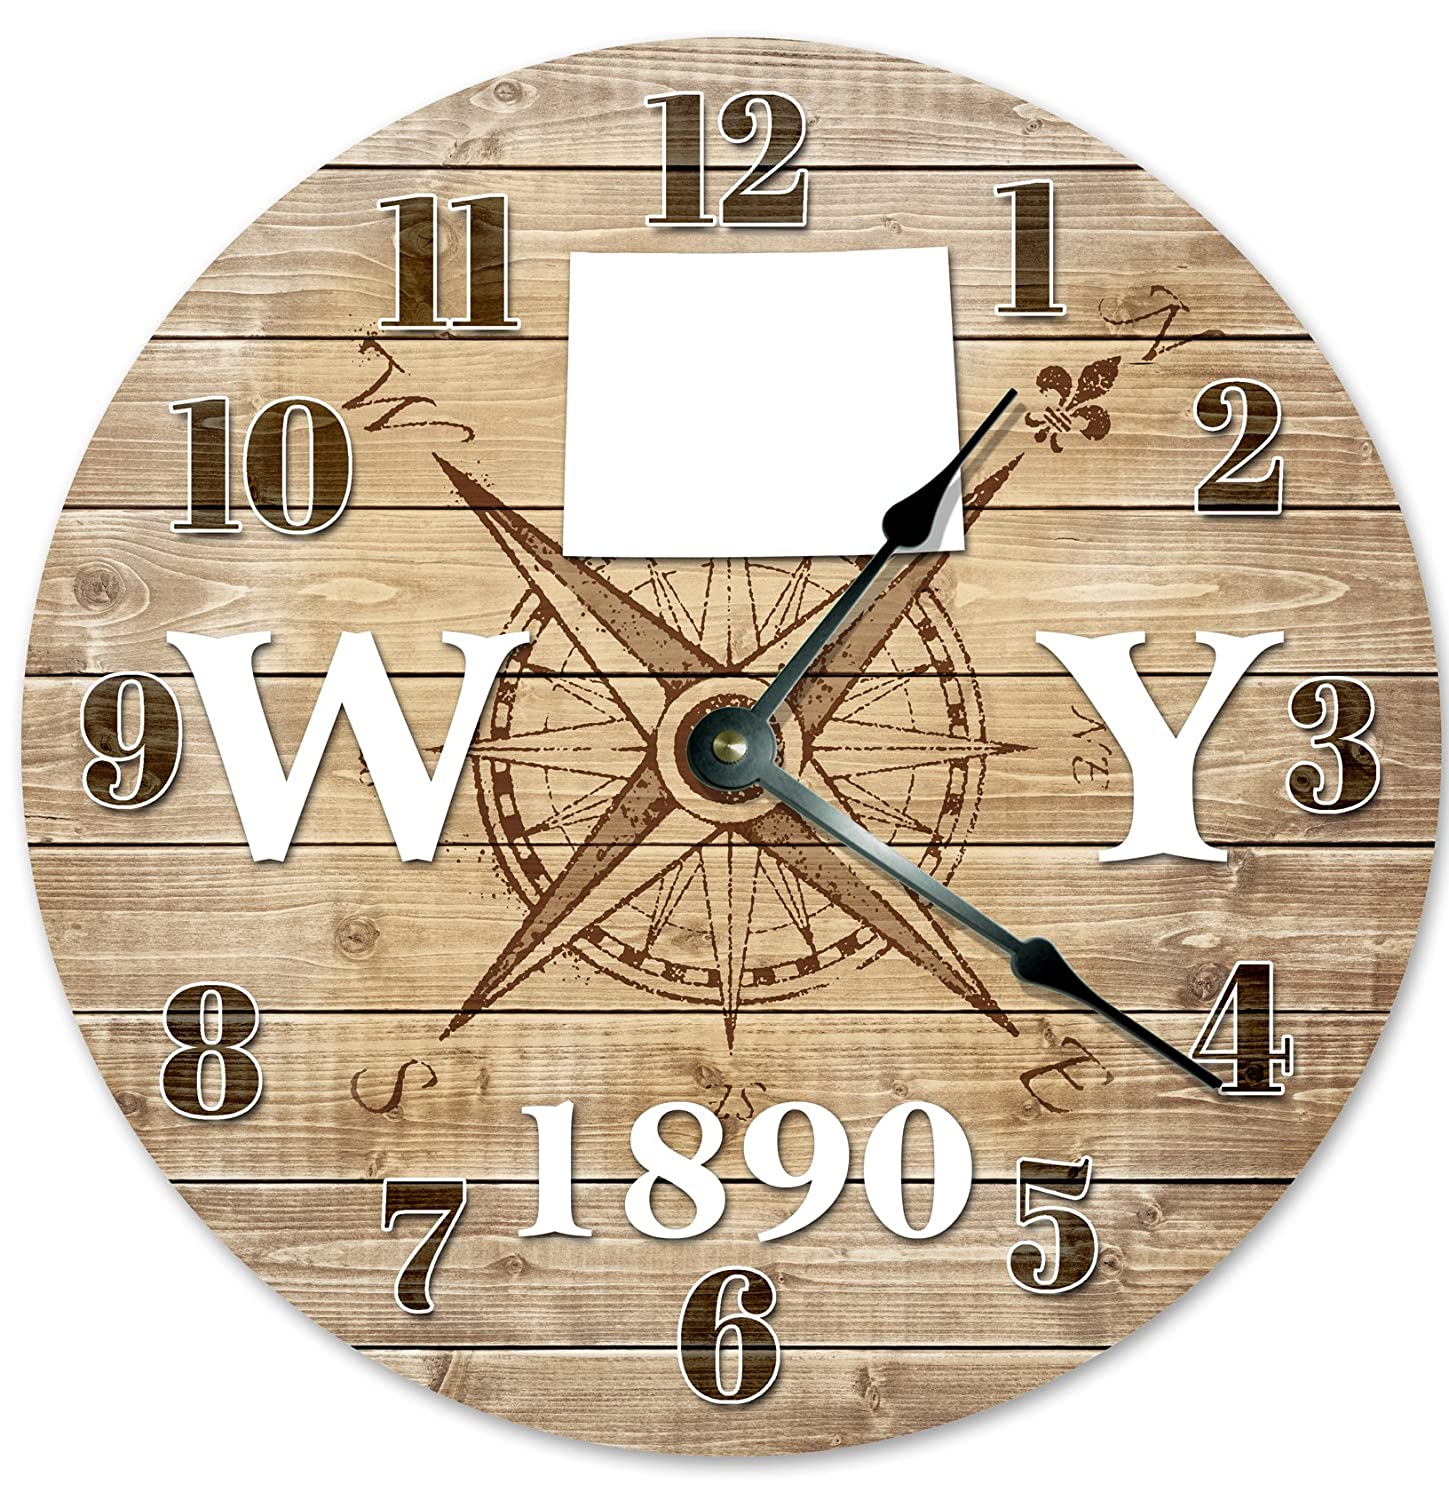 "WYOMING Established in 1890 Decorative Round Wall Clock Home Decor Large 10.5"" COMPASS MAP RUSTIC STATE CLOCK Printed Wood Image"